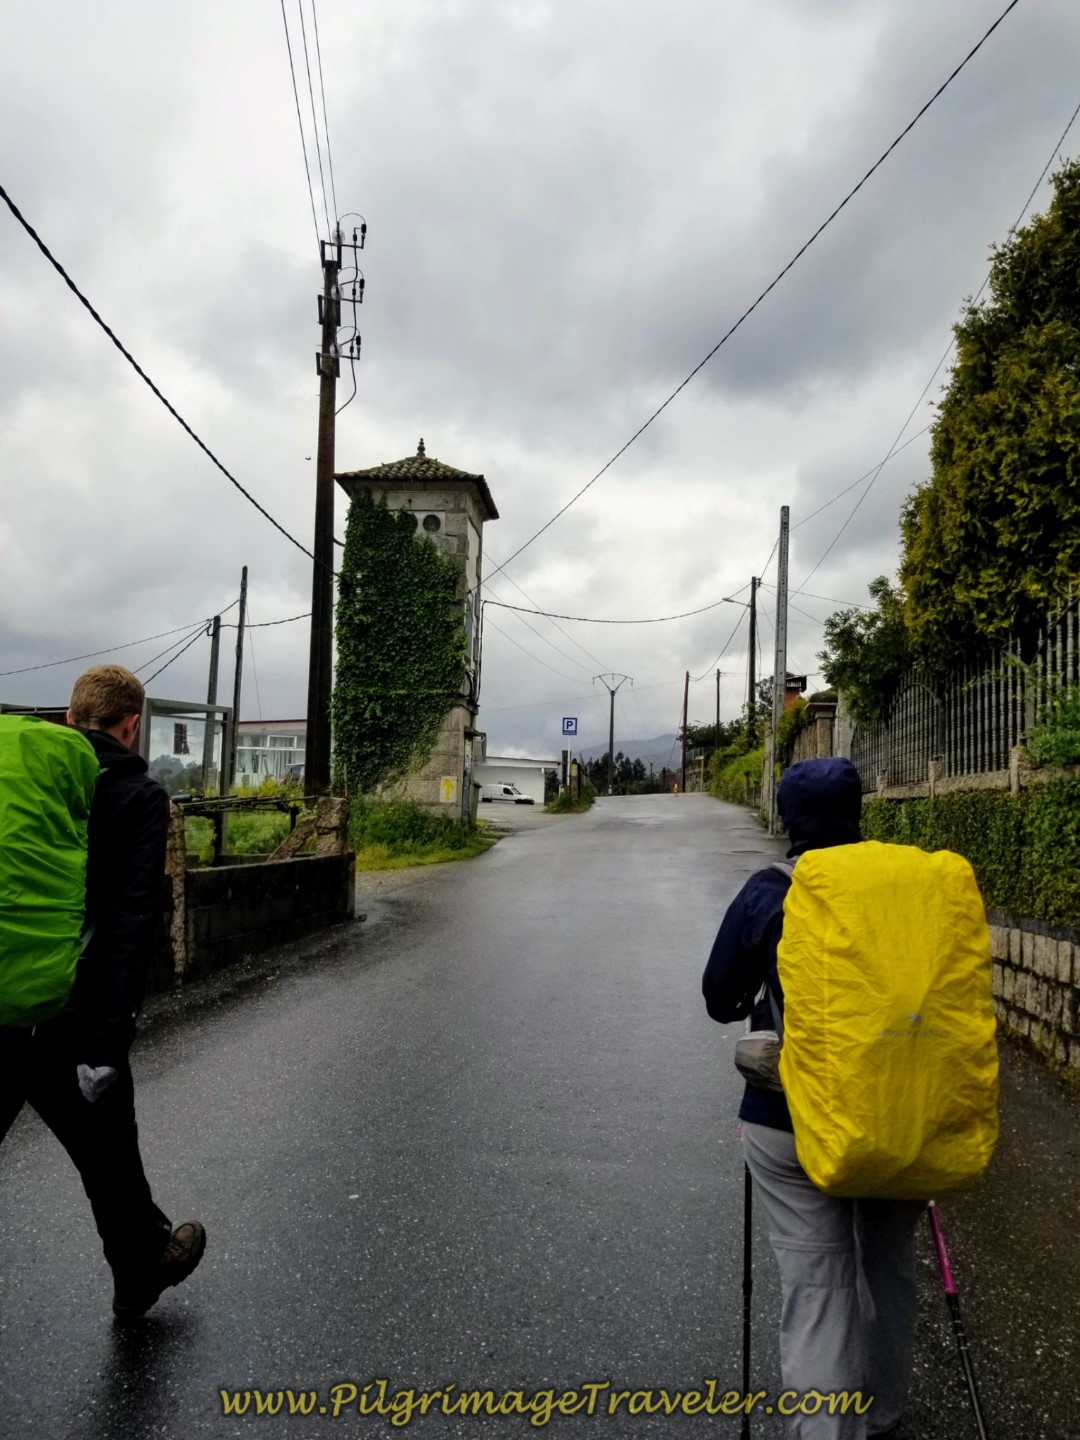 Camiño Vello de Santiago Parallels the N-550 Northward in O Porriño on day twenty-one of the central route of the Portuguese Camino